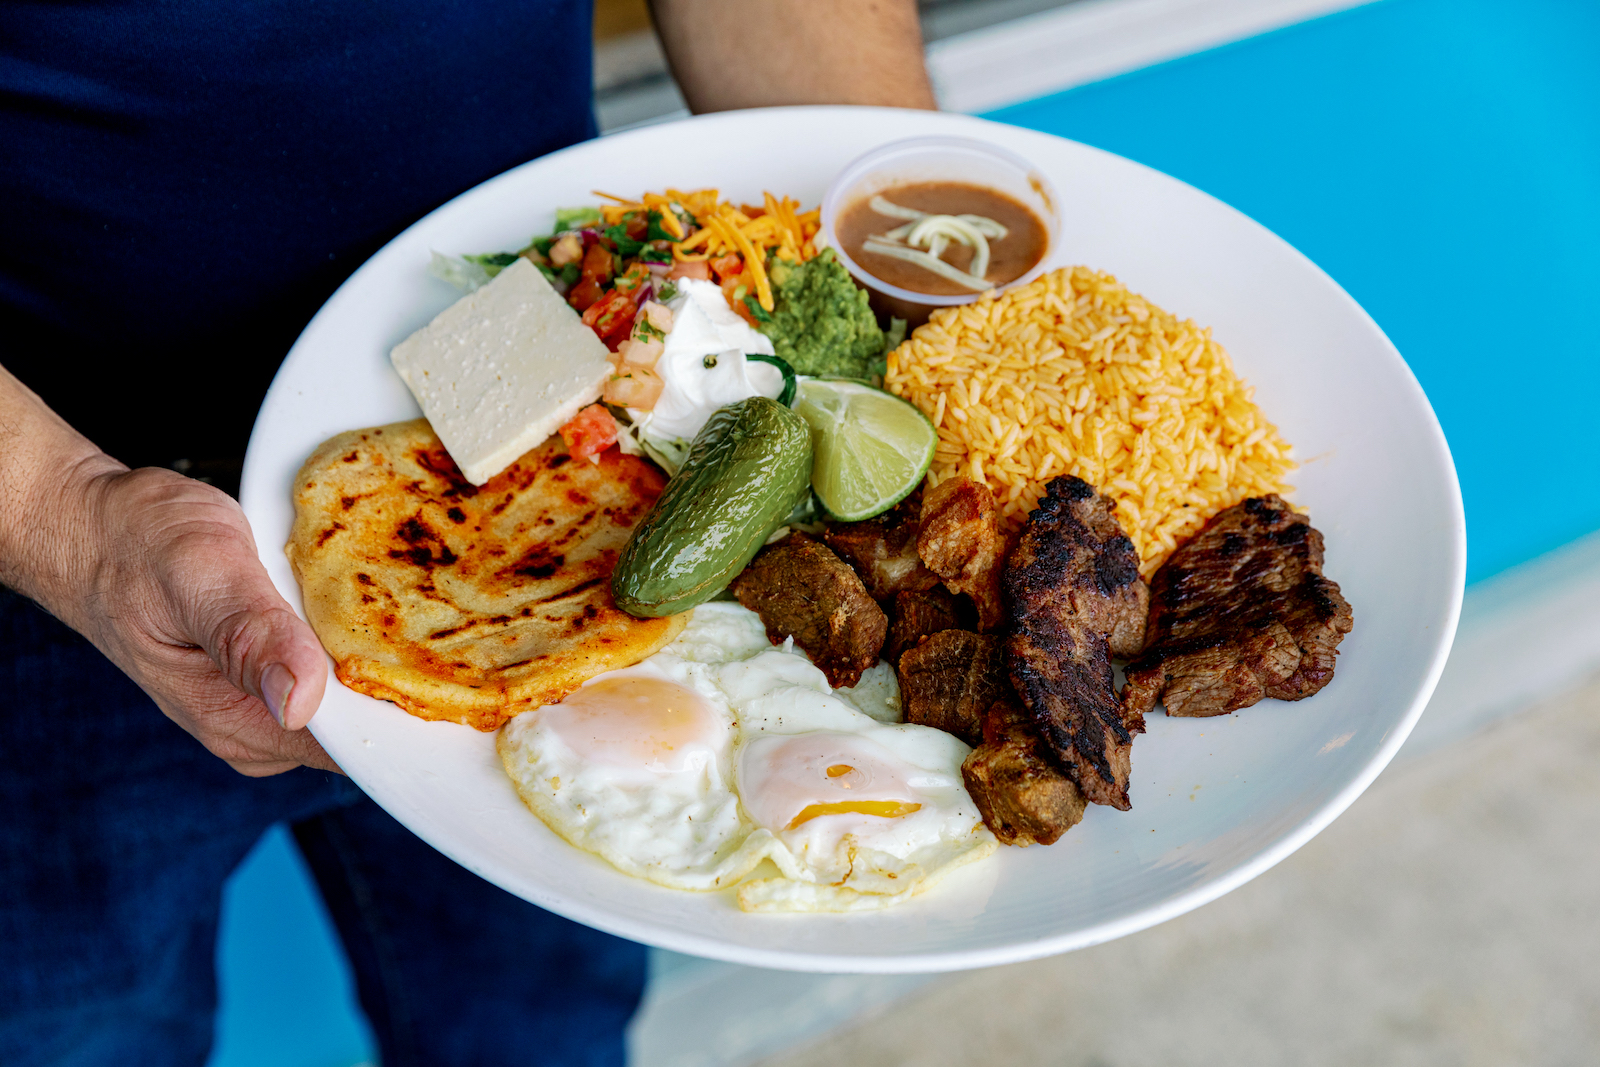 The Bandeja Salvadoreña at El Cuscatleco in Durham is just one example of the array of Latin American flavors now found in the Triangle